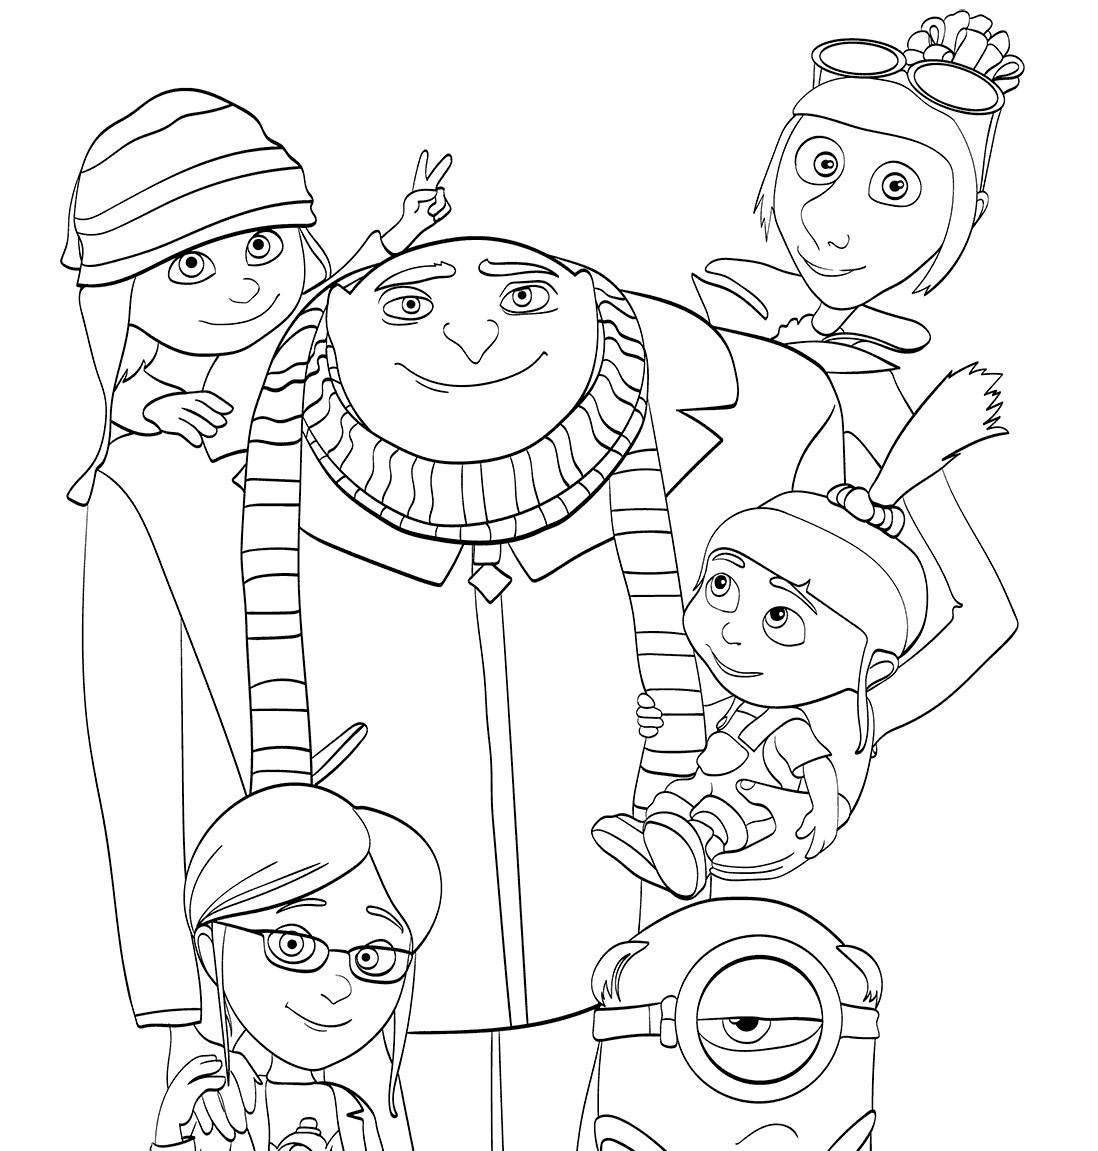 despicable me coloring pages despicable me 3 coloring pages to download and print for free coloring pages me despicable